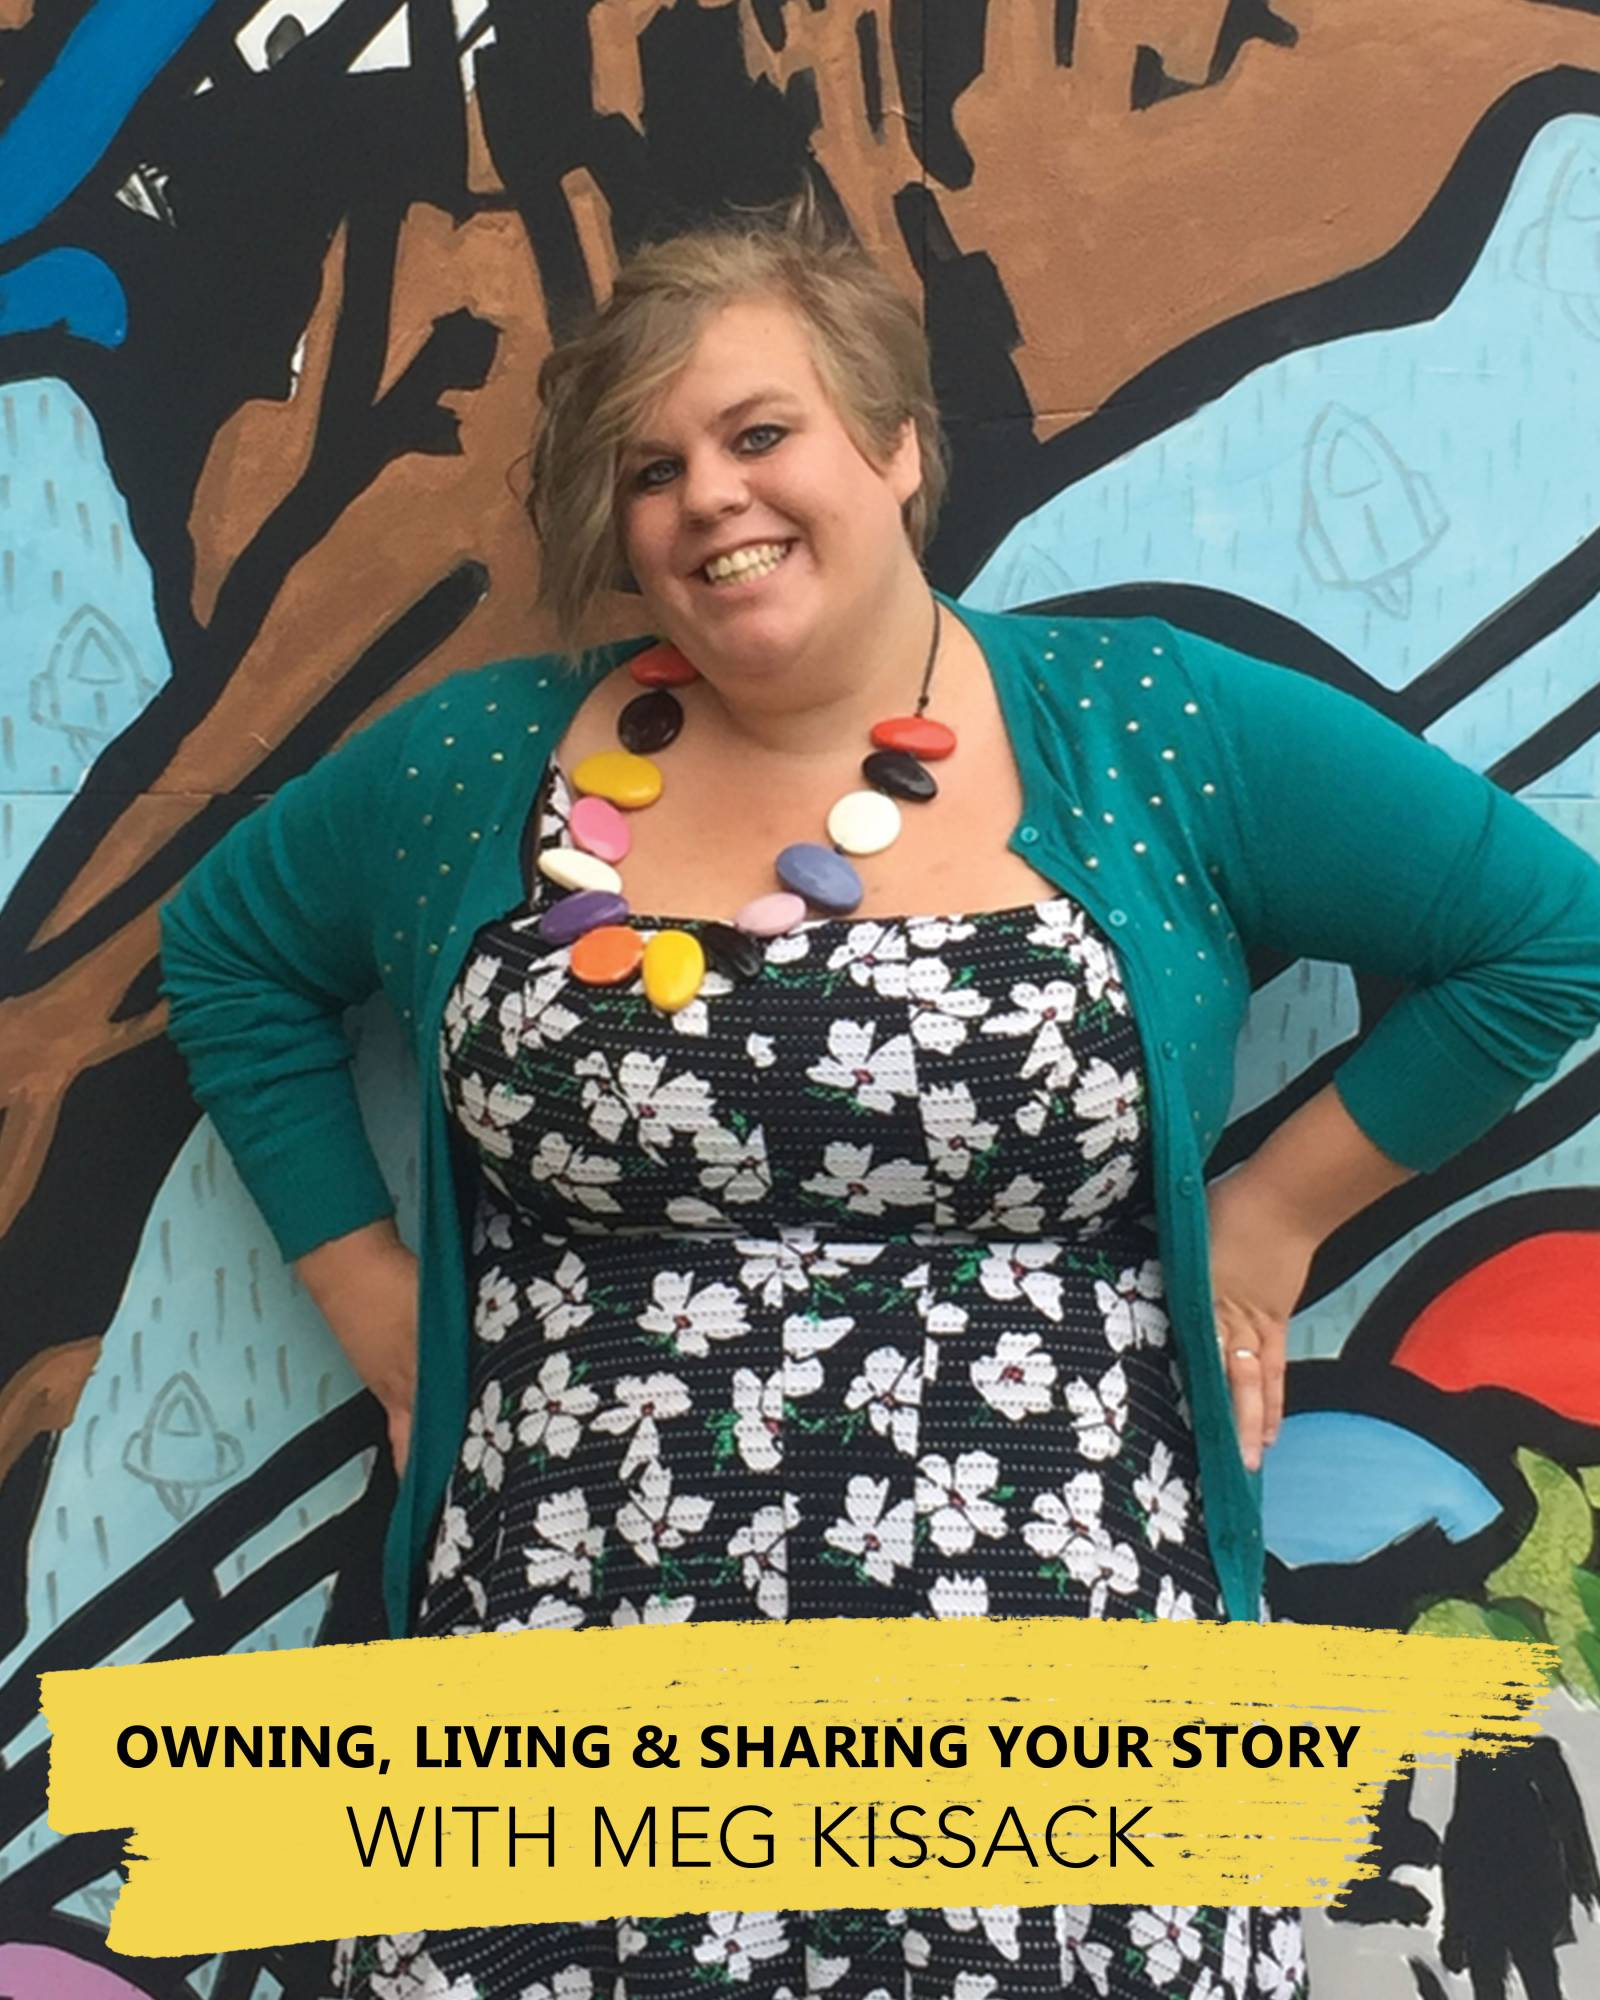 episode-48-owning-living-sharing-your-story-with-meg-kissack.jpg